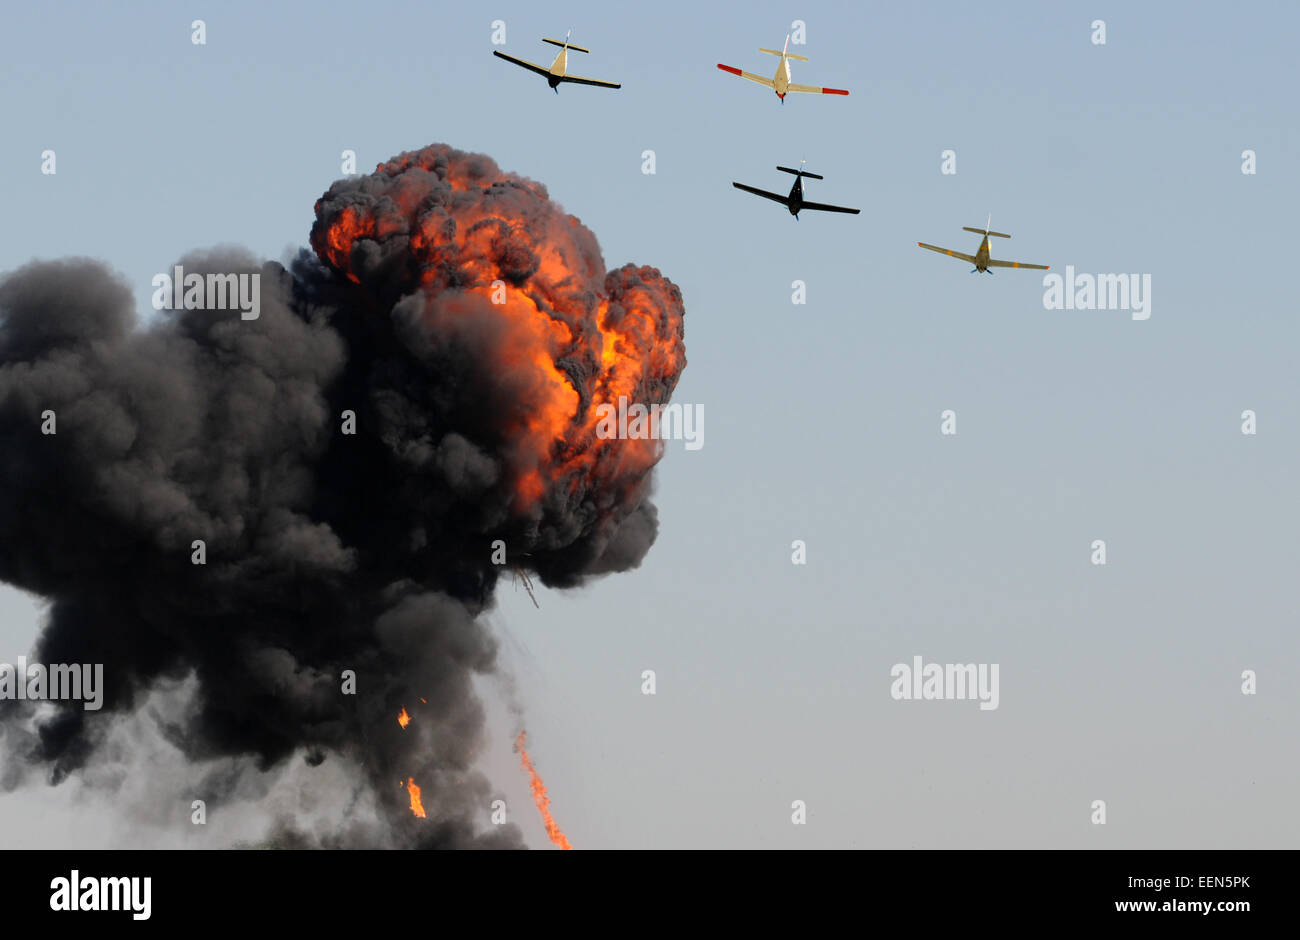 Old airplanes in a bombing run with smoke and fire - Stock Image